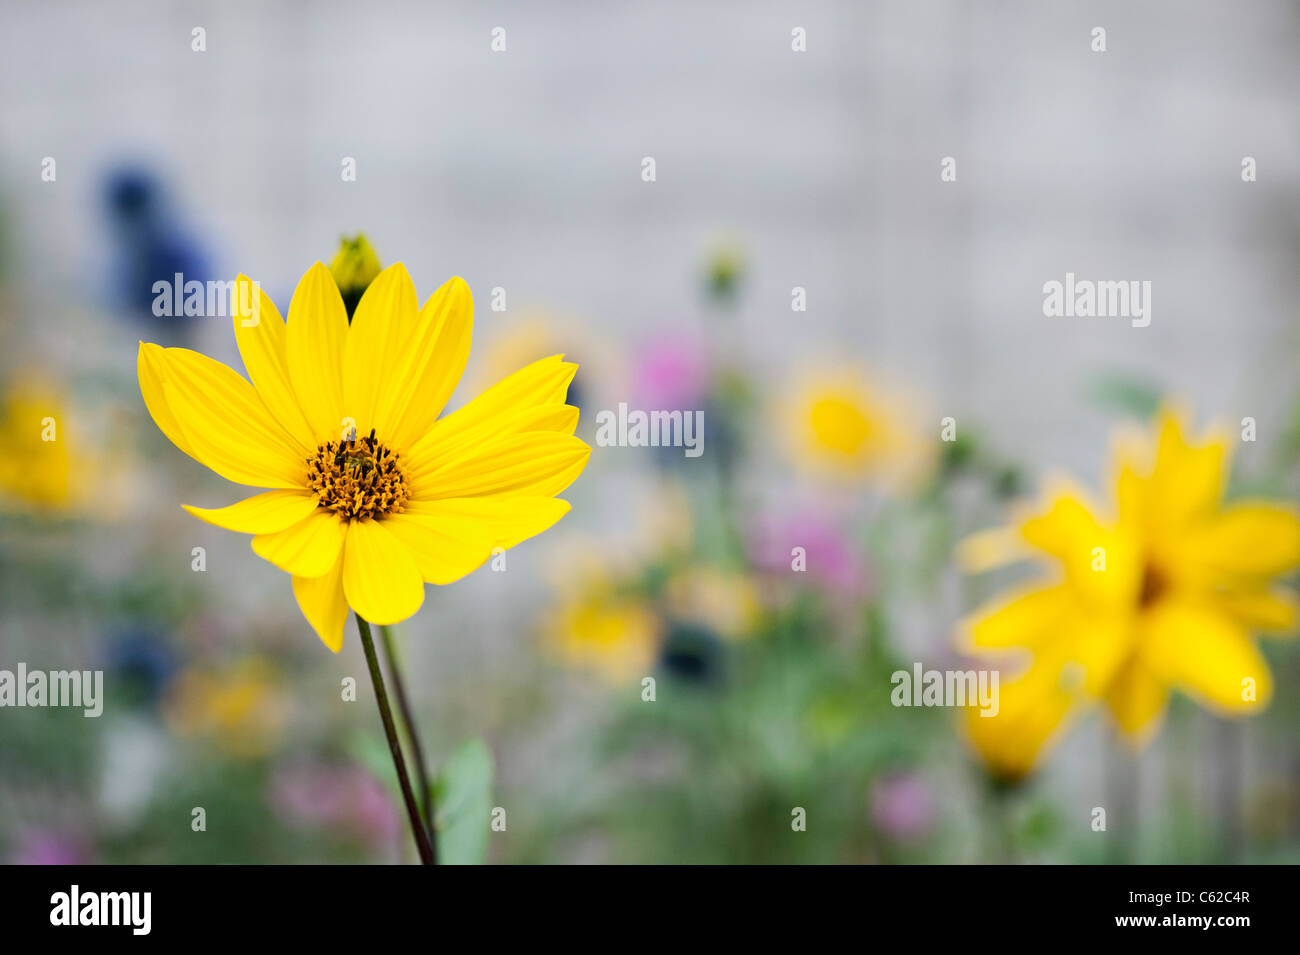 Helianthus salicifolius. Willow-leaved sunflower - Stock Image